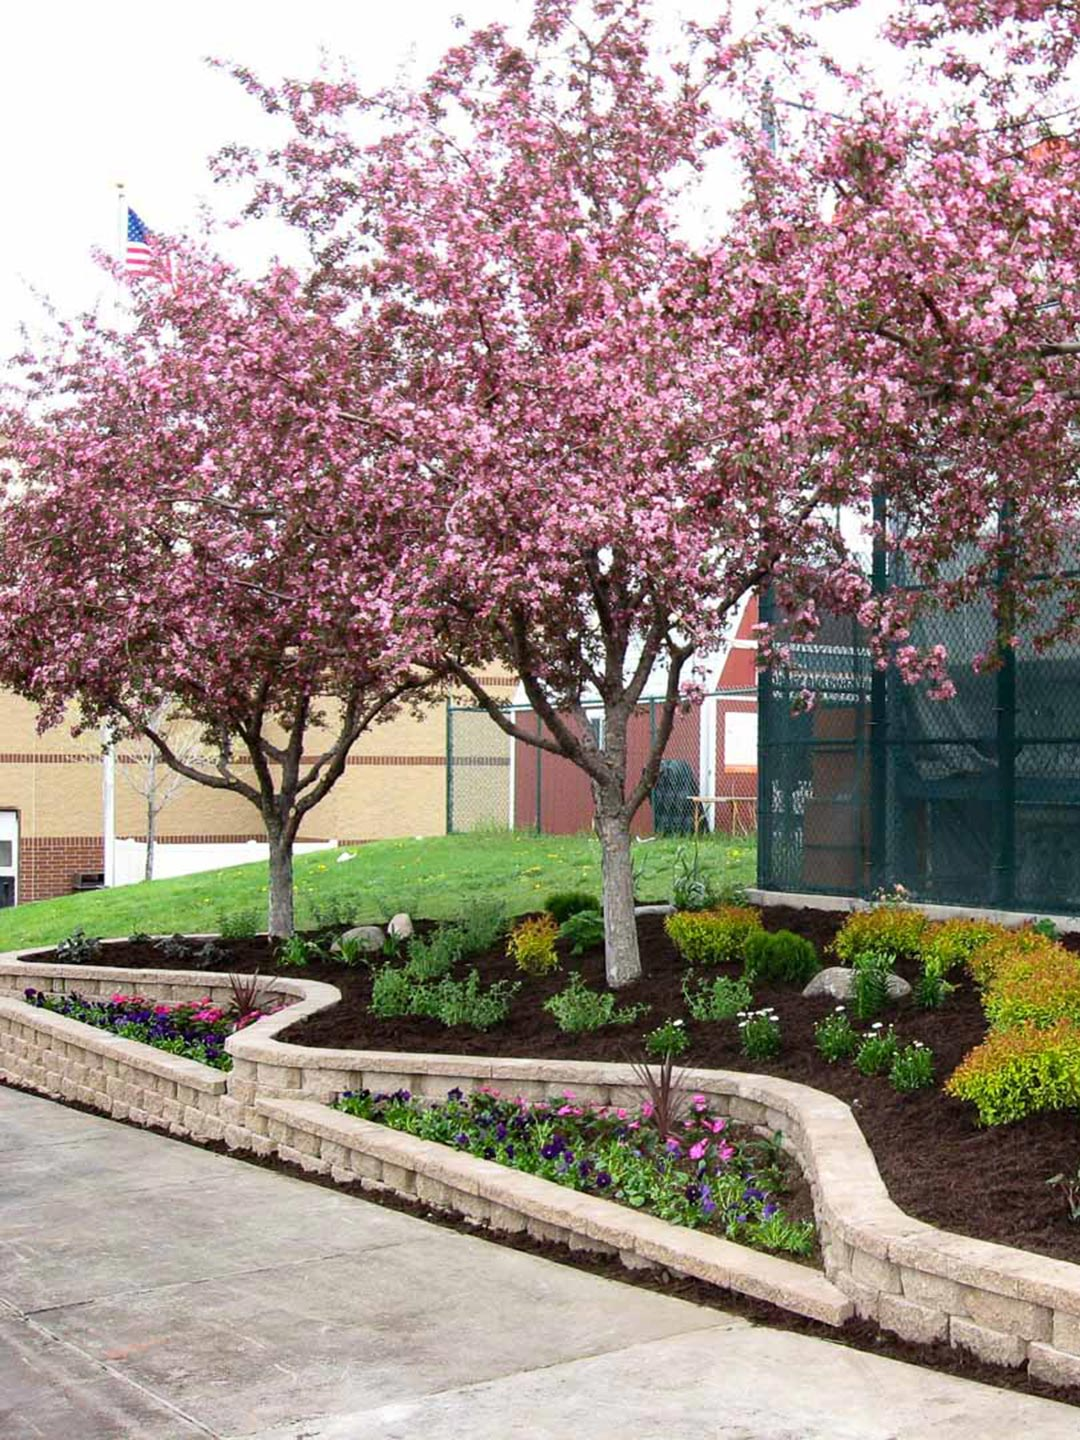 Commercial landscaping by Greenside Inc